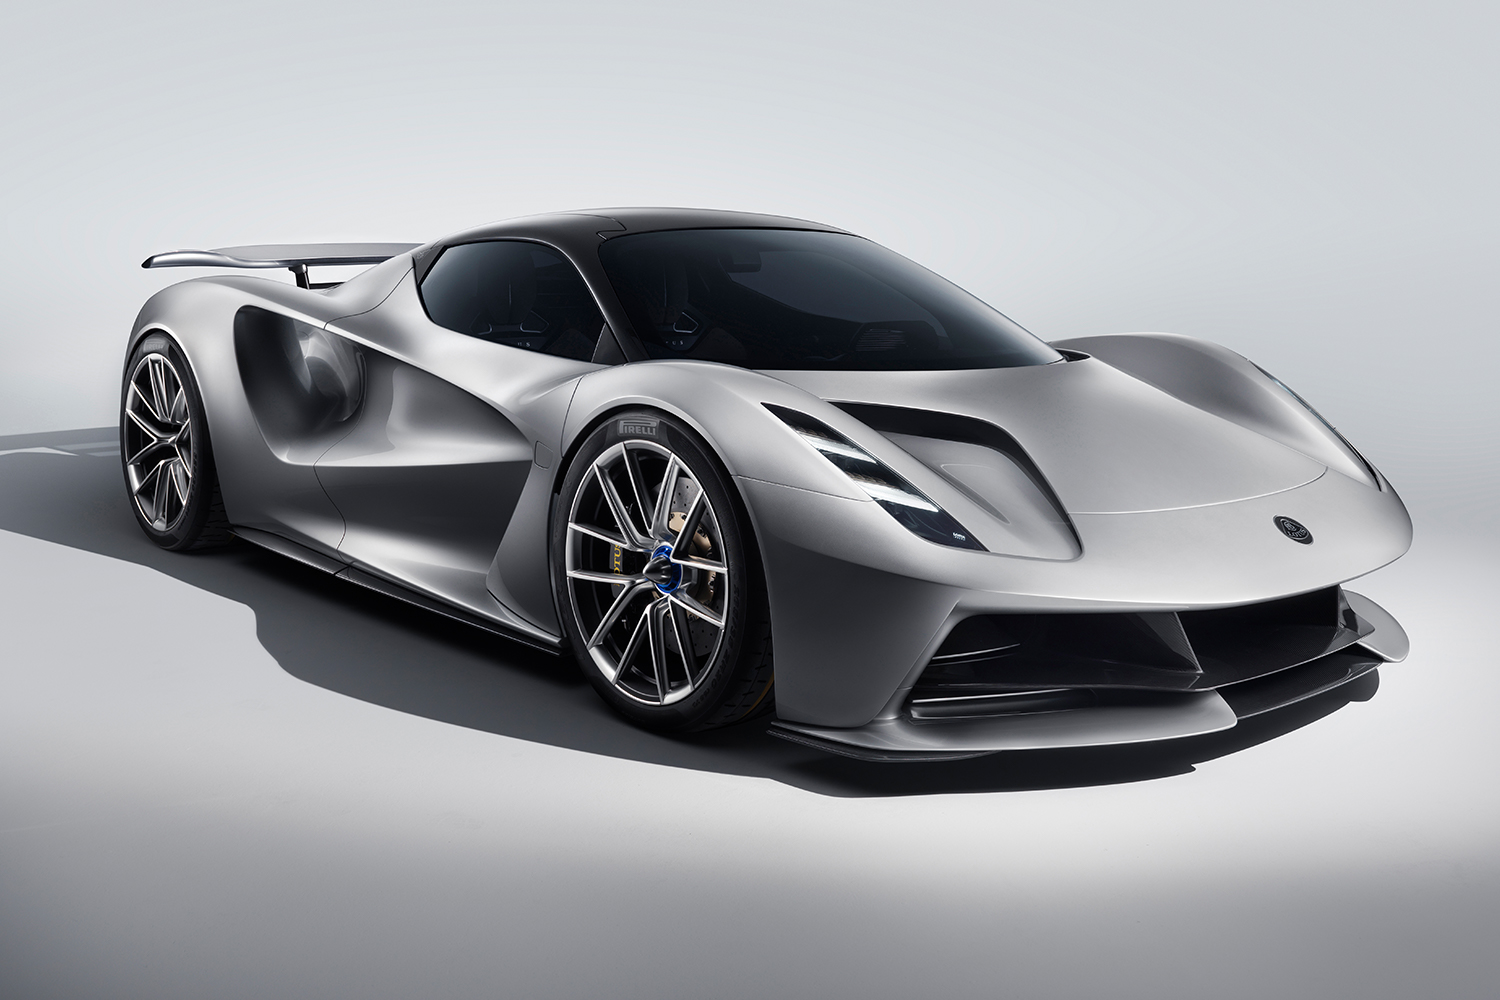 First Official Look at the Lotus Evija Electric Hypercar